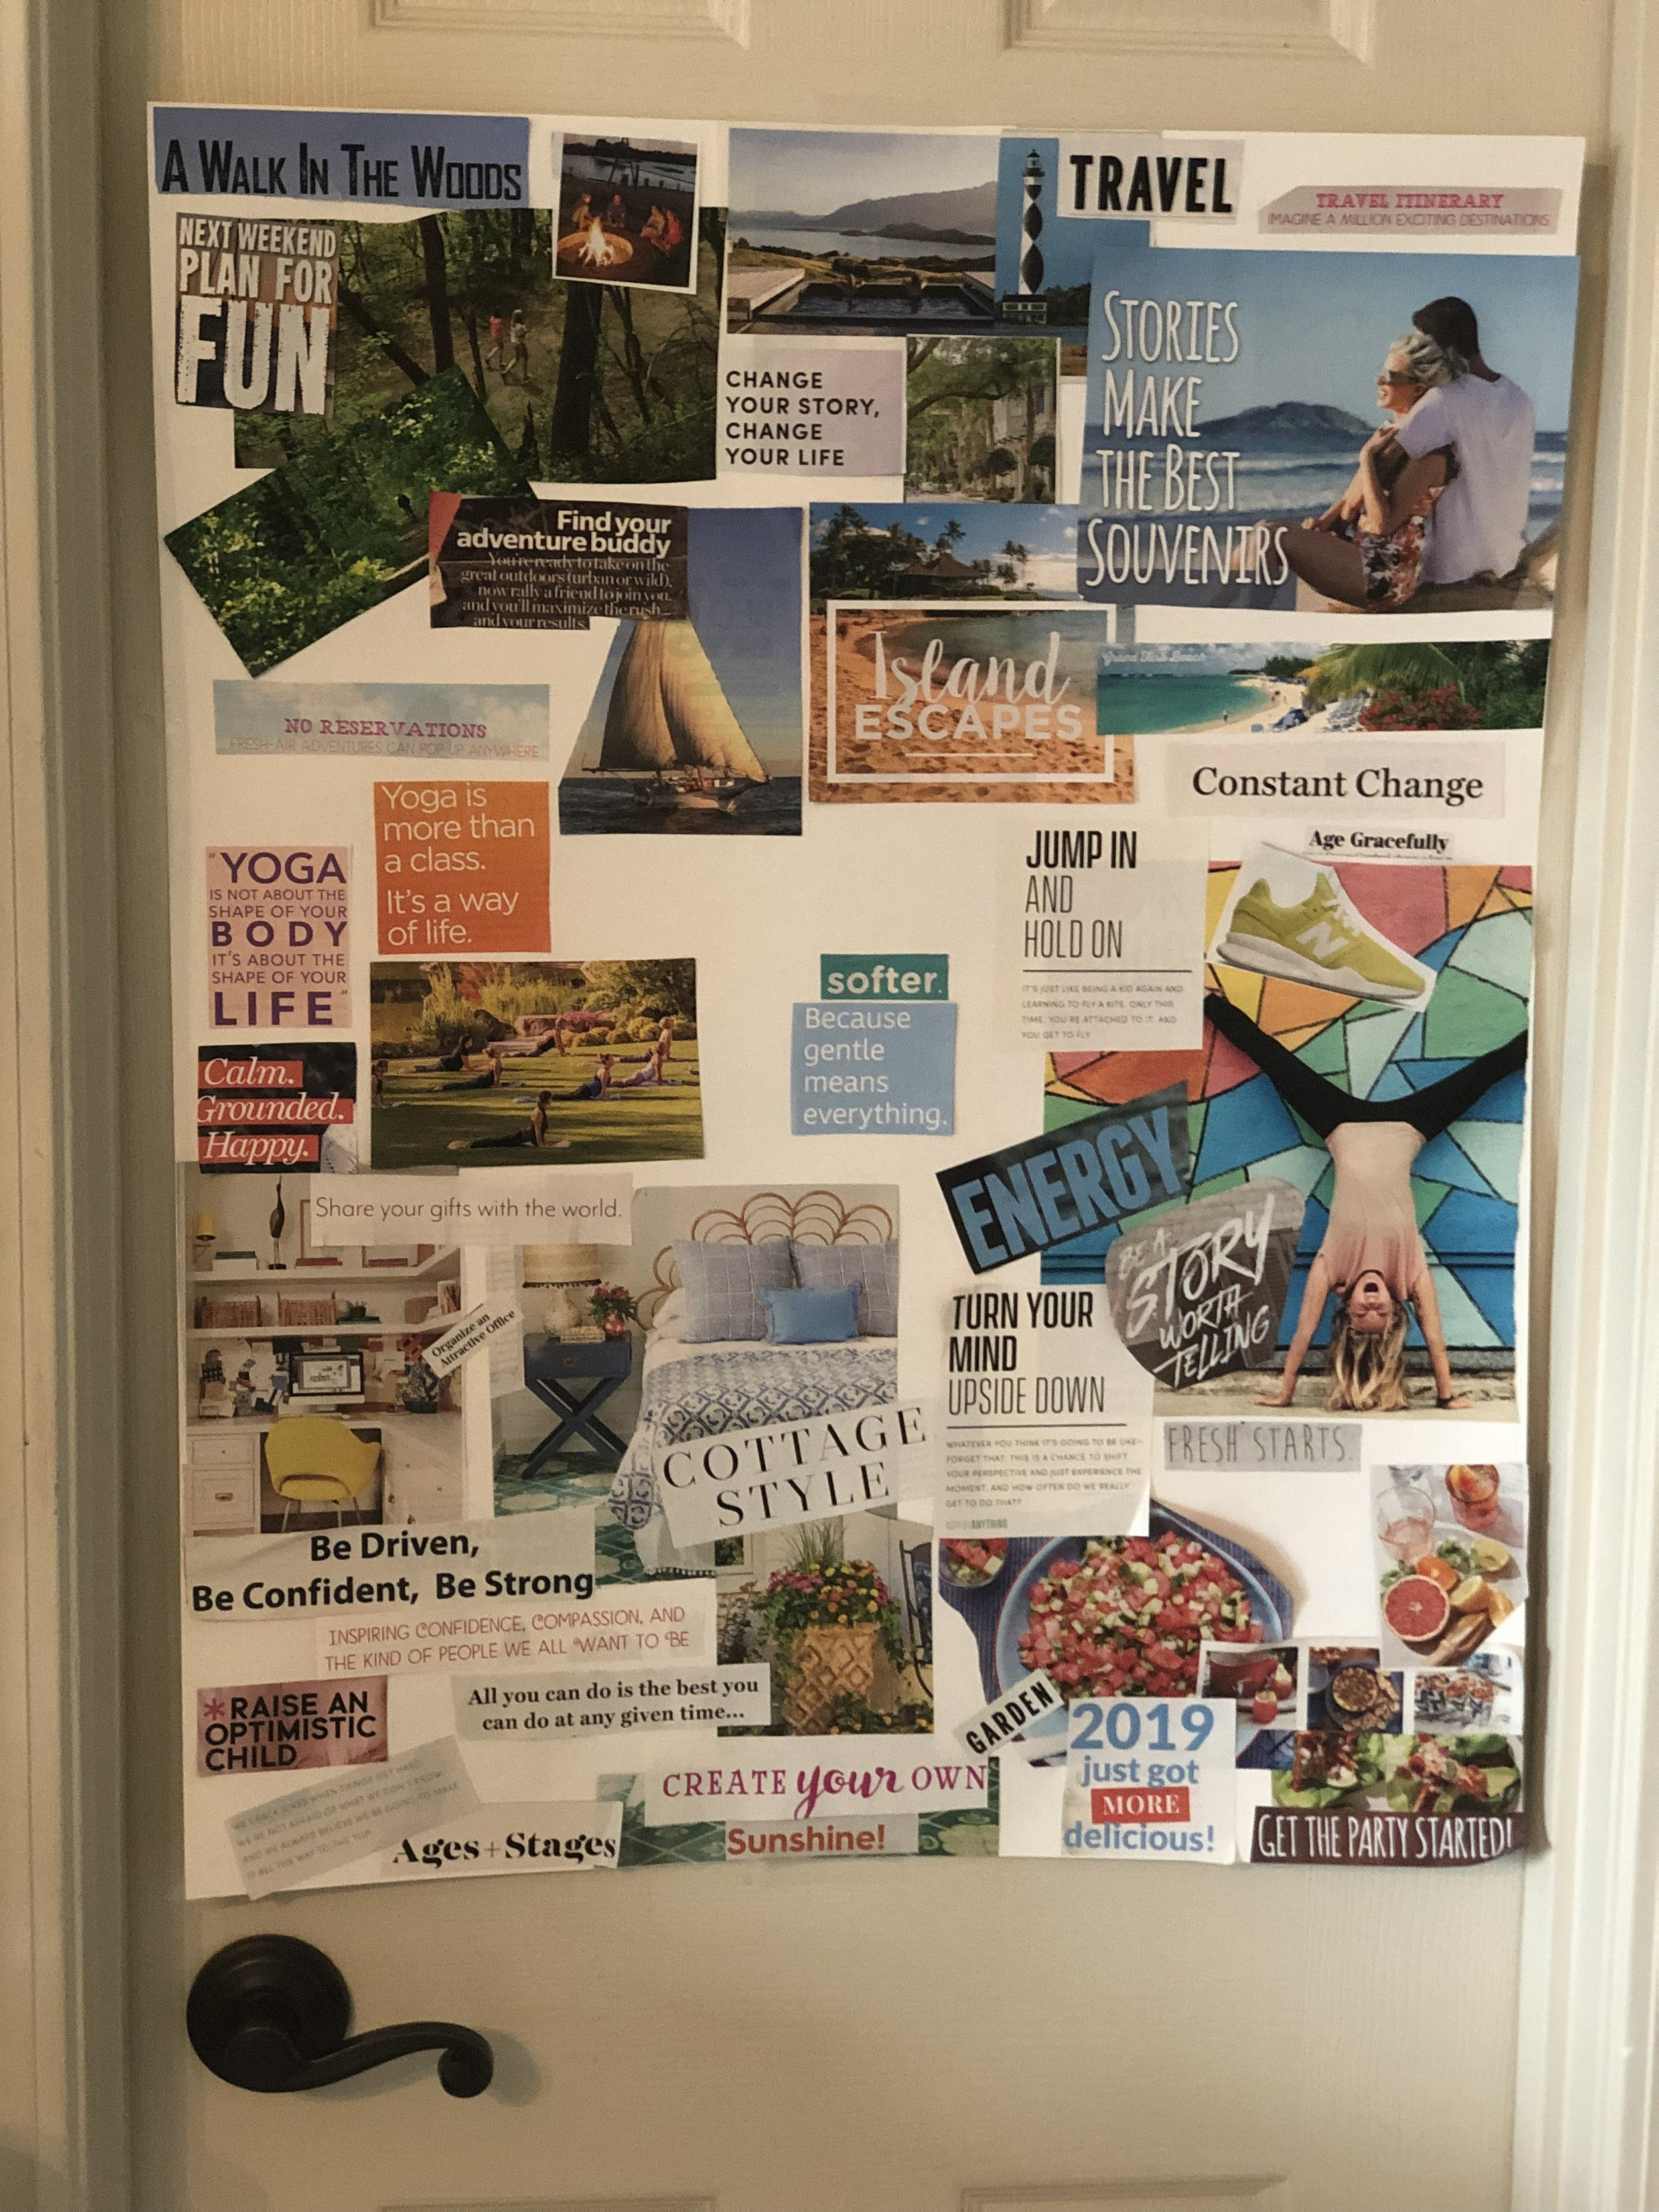 Did I mention how much I LOVE creating a VISION BOARD each year! It is may favorite way to plan for the year, setting goals, visualizing how I can live my best life.